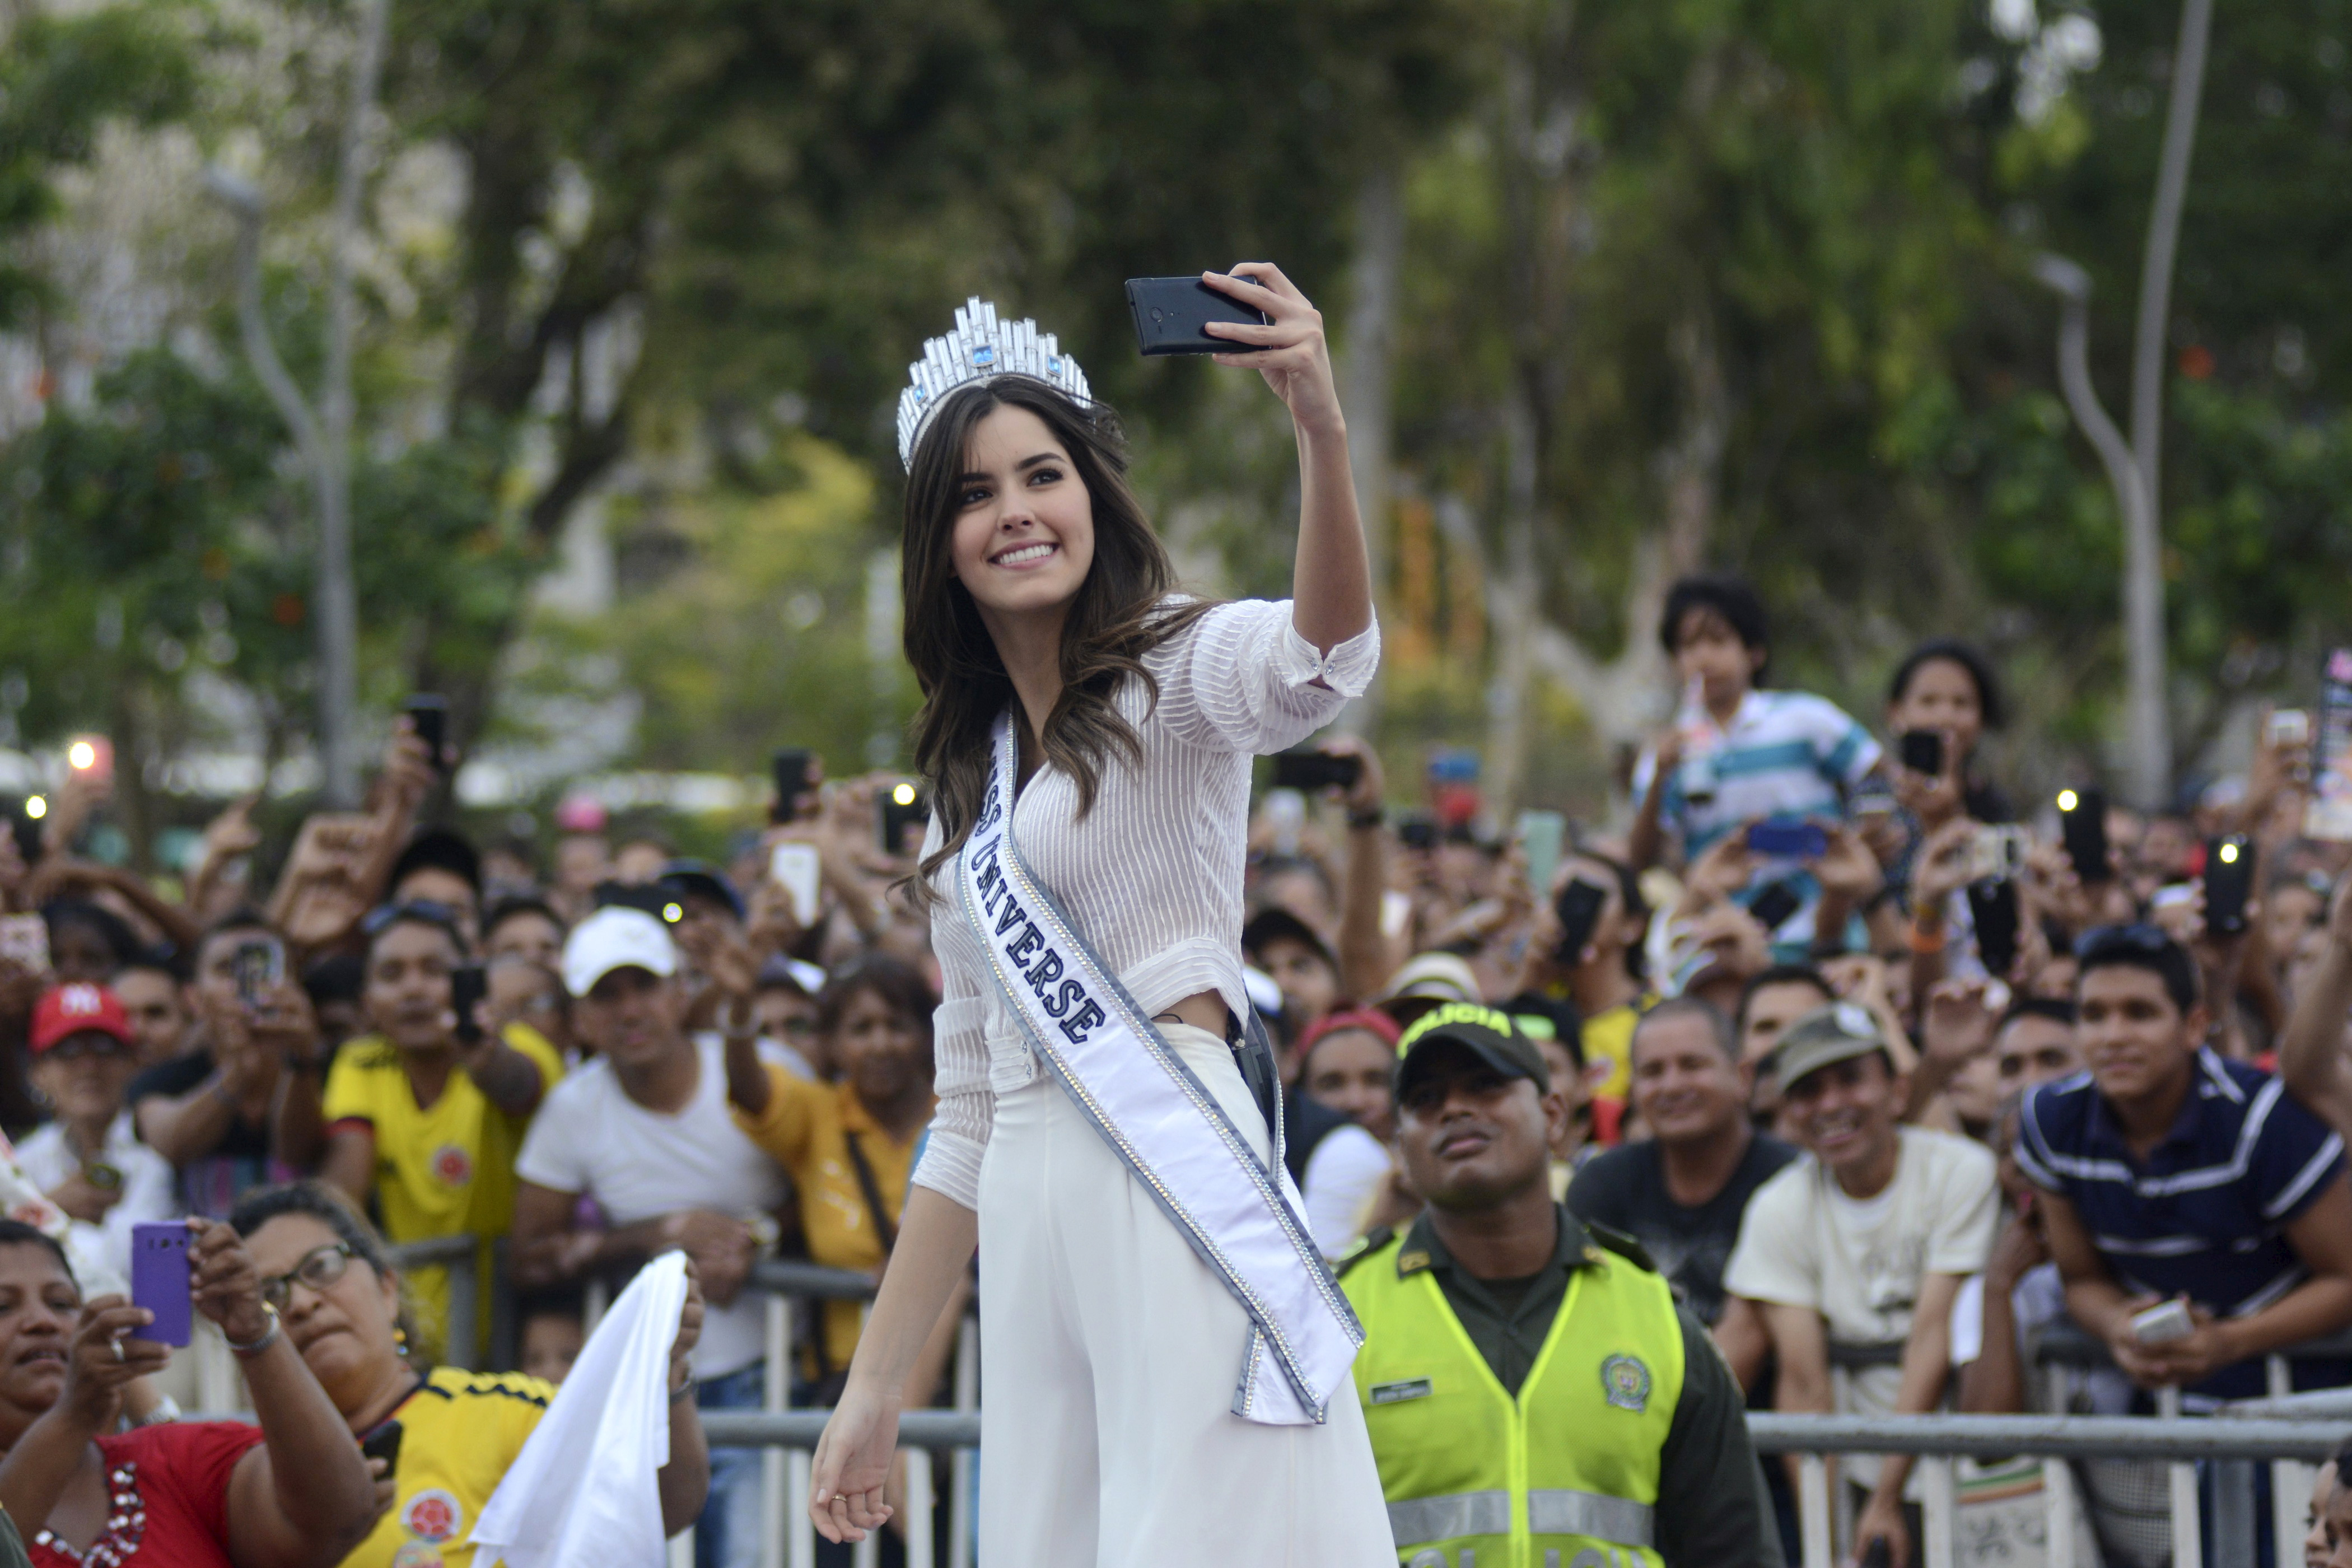 Miss Universe 2015 Paulina Vega of Colombia takes a